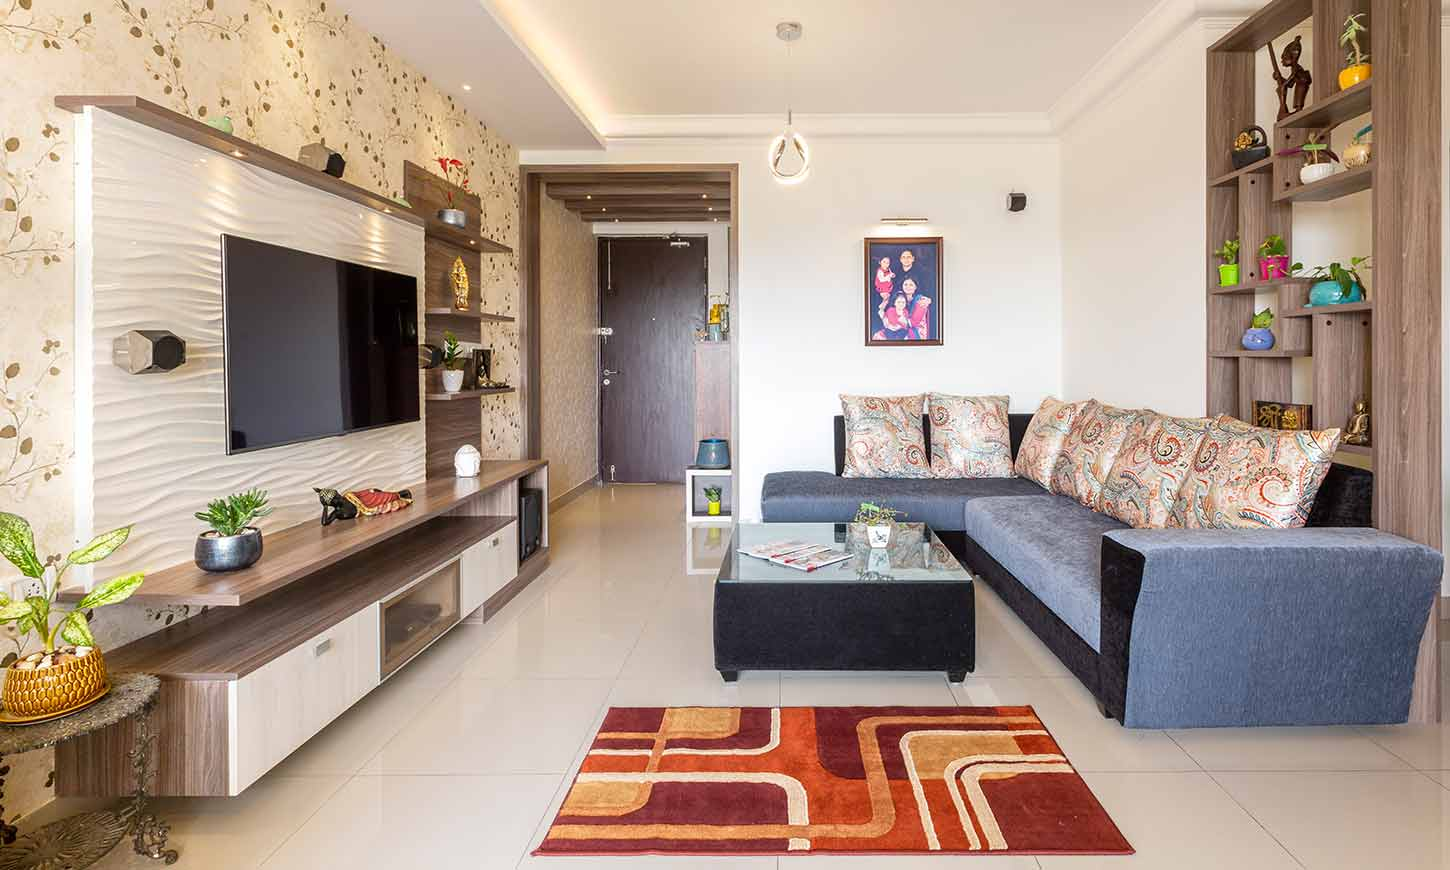 Living room designed by budget interiors in bangalore with tv unit and showcase